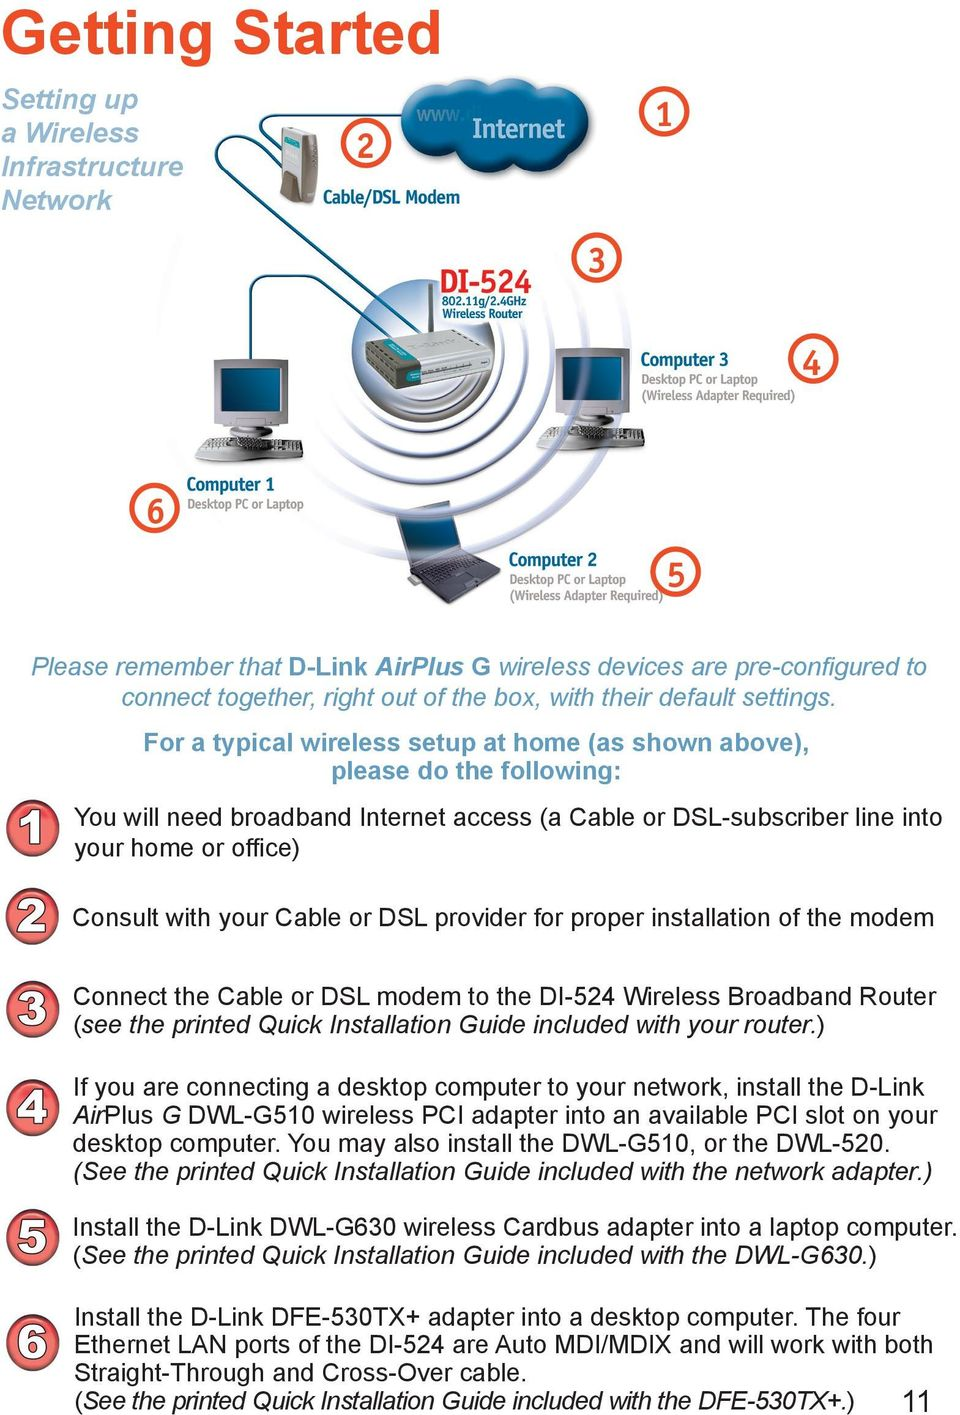 For a typical wireless setup at home (as shown above), please do the following: You will need broadband Internet access (a Cable or DSL-subscriber line into your home or office) Consult with your